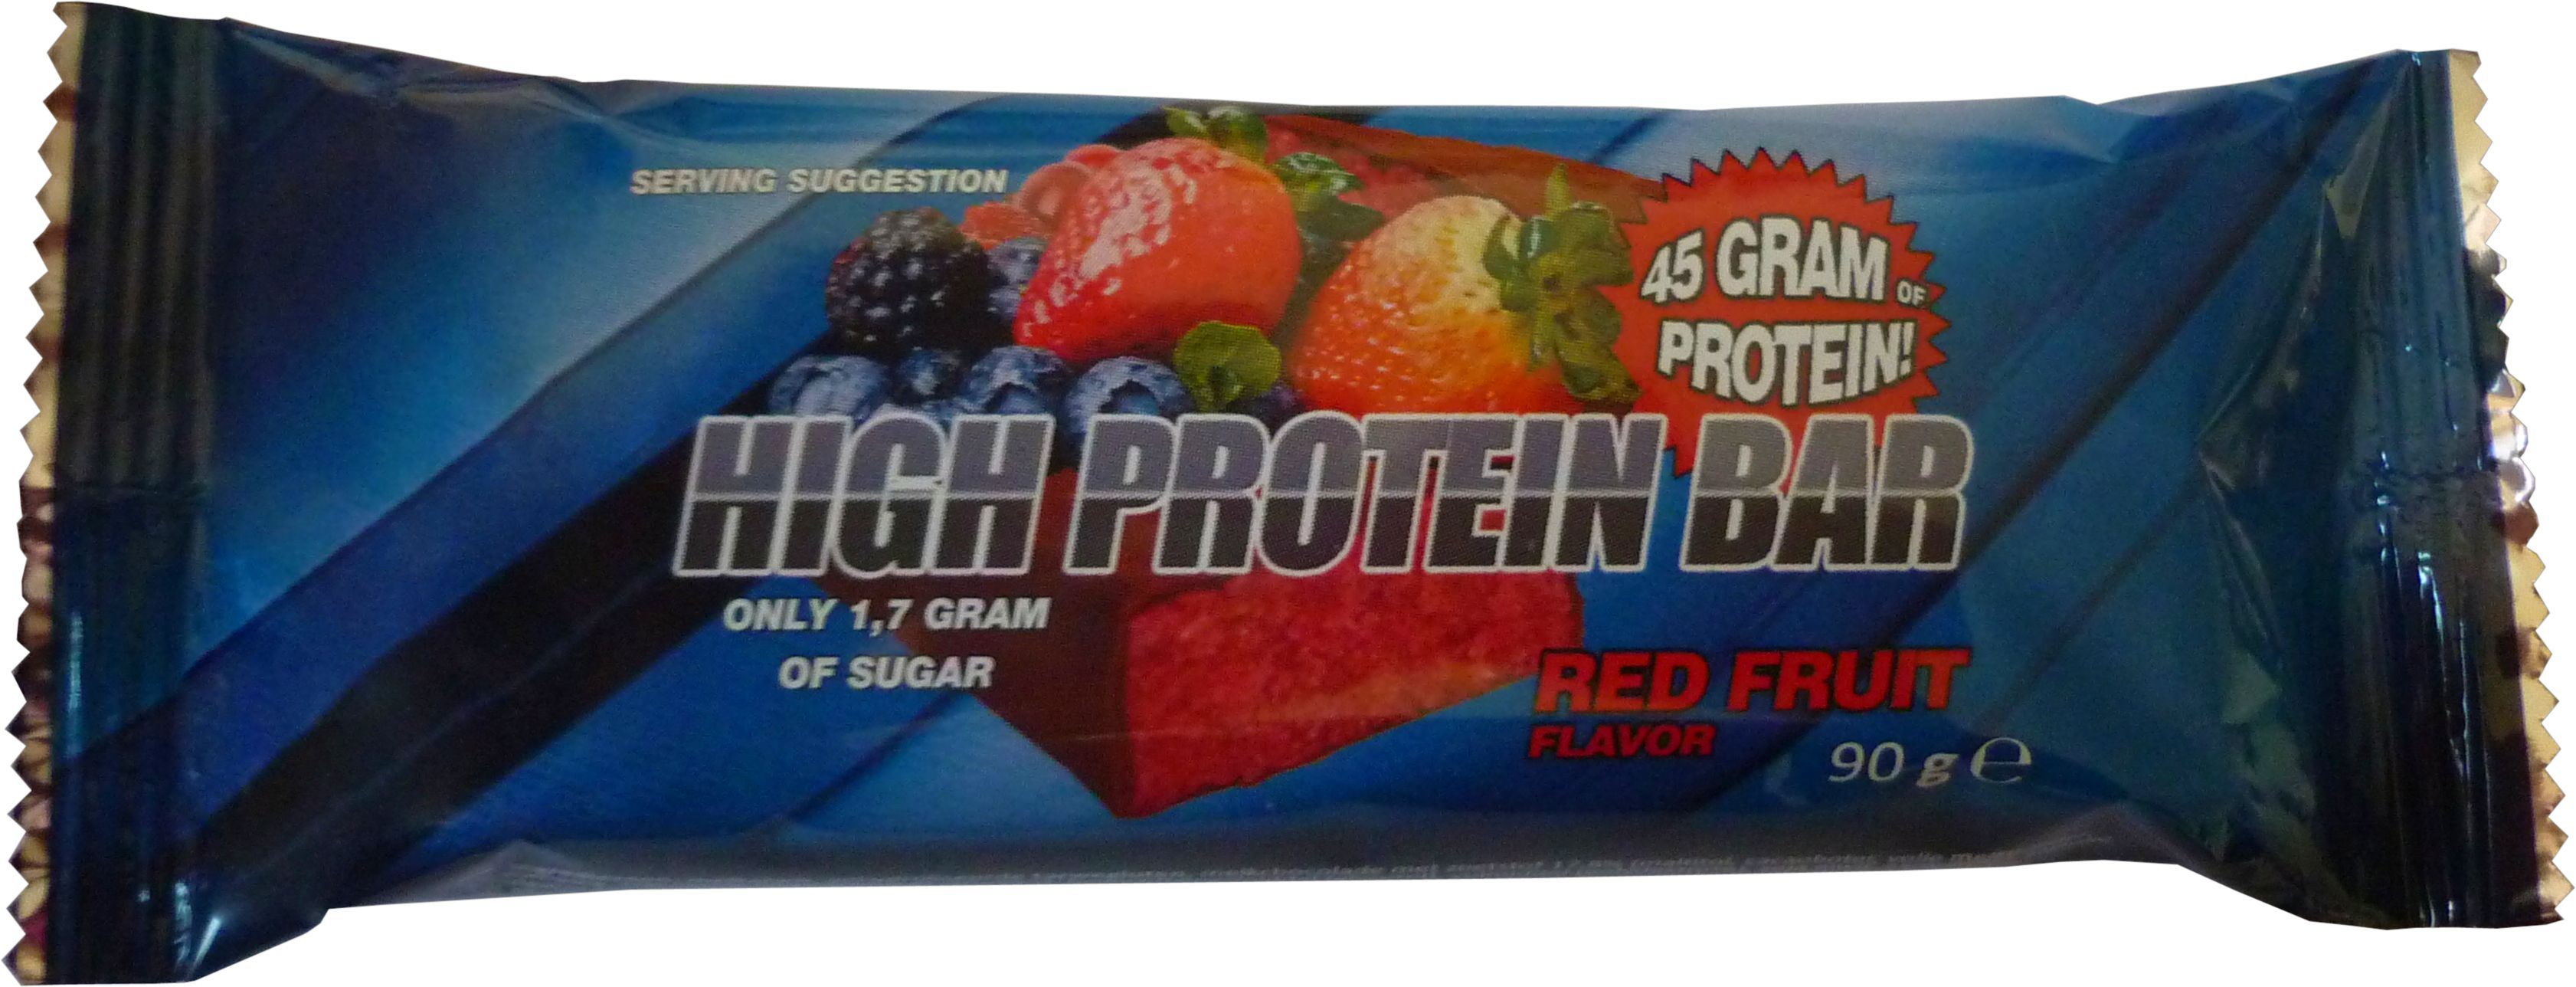 XXL Nutrition - Red Fruits